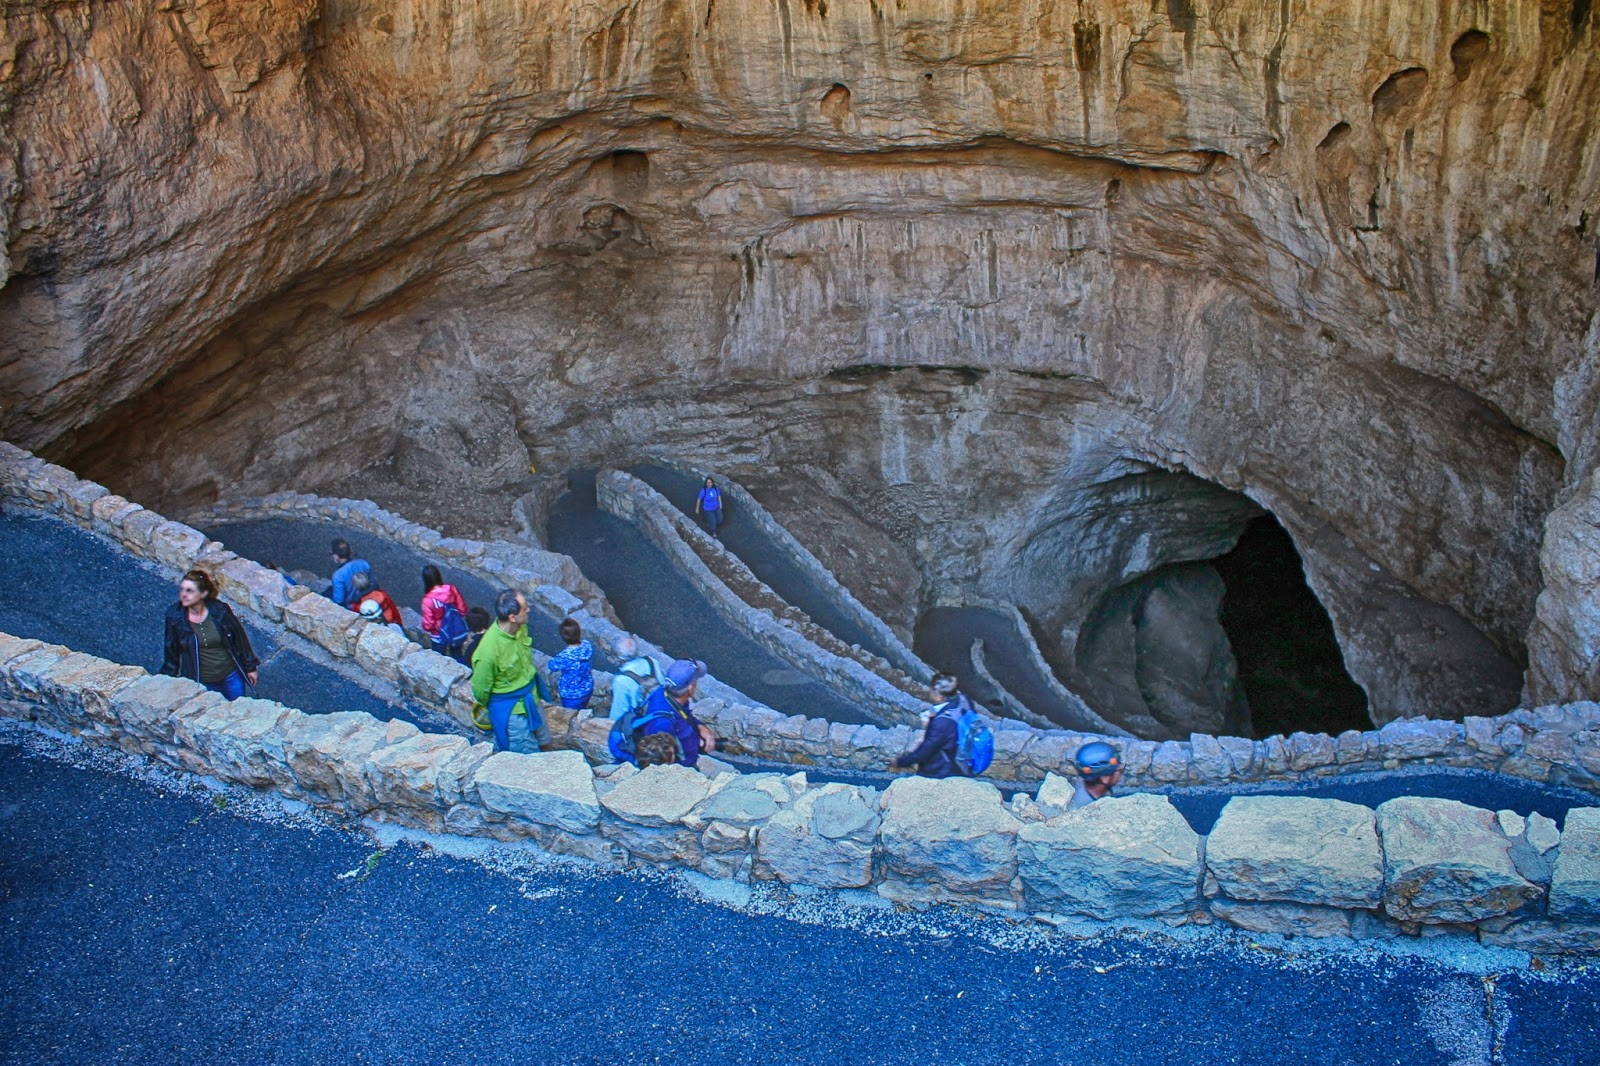 Carlsbad Caverns National Park New Mexico caves geology reef spelunking explore travel trip copyright rocdoctravel.com